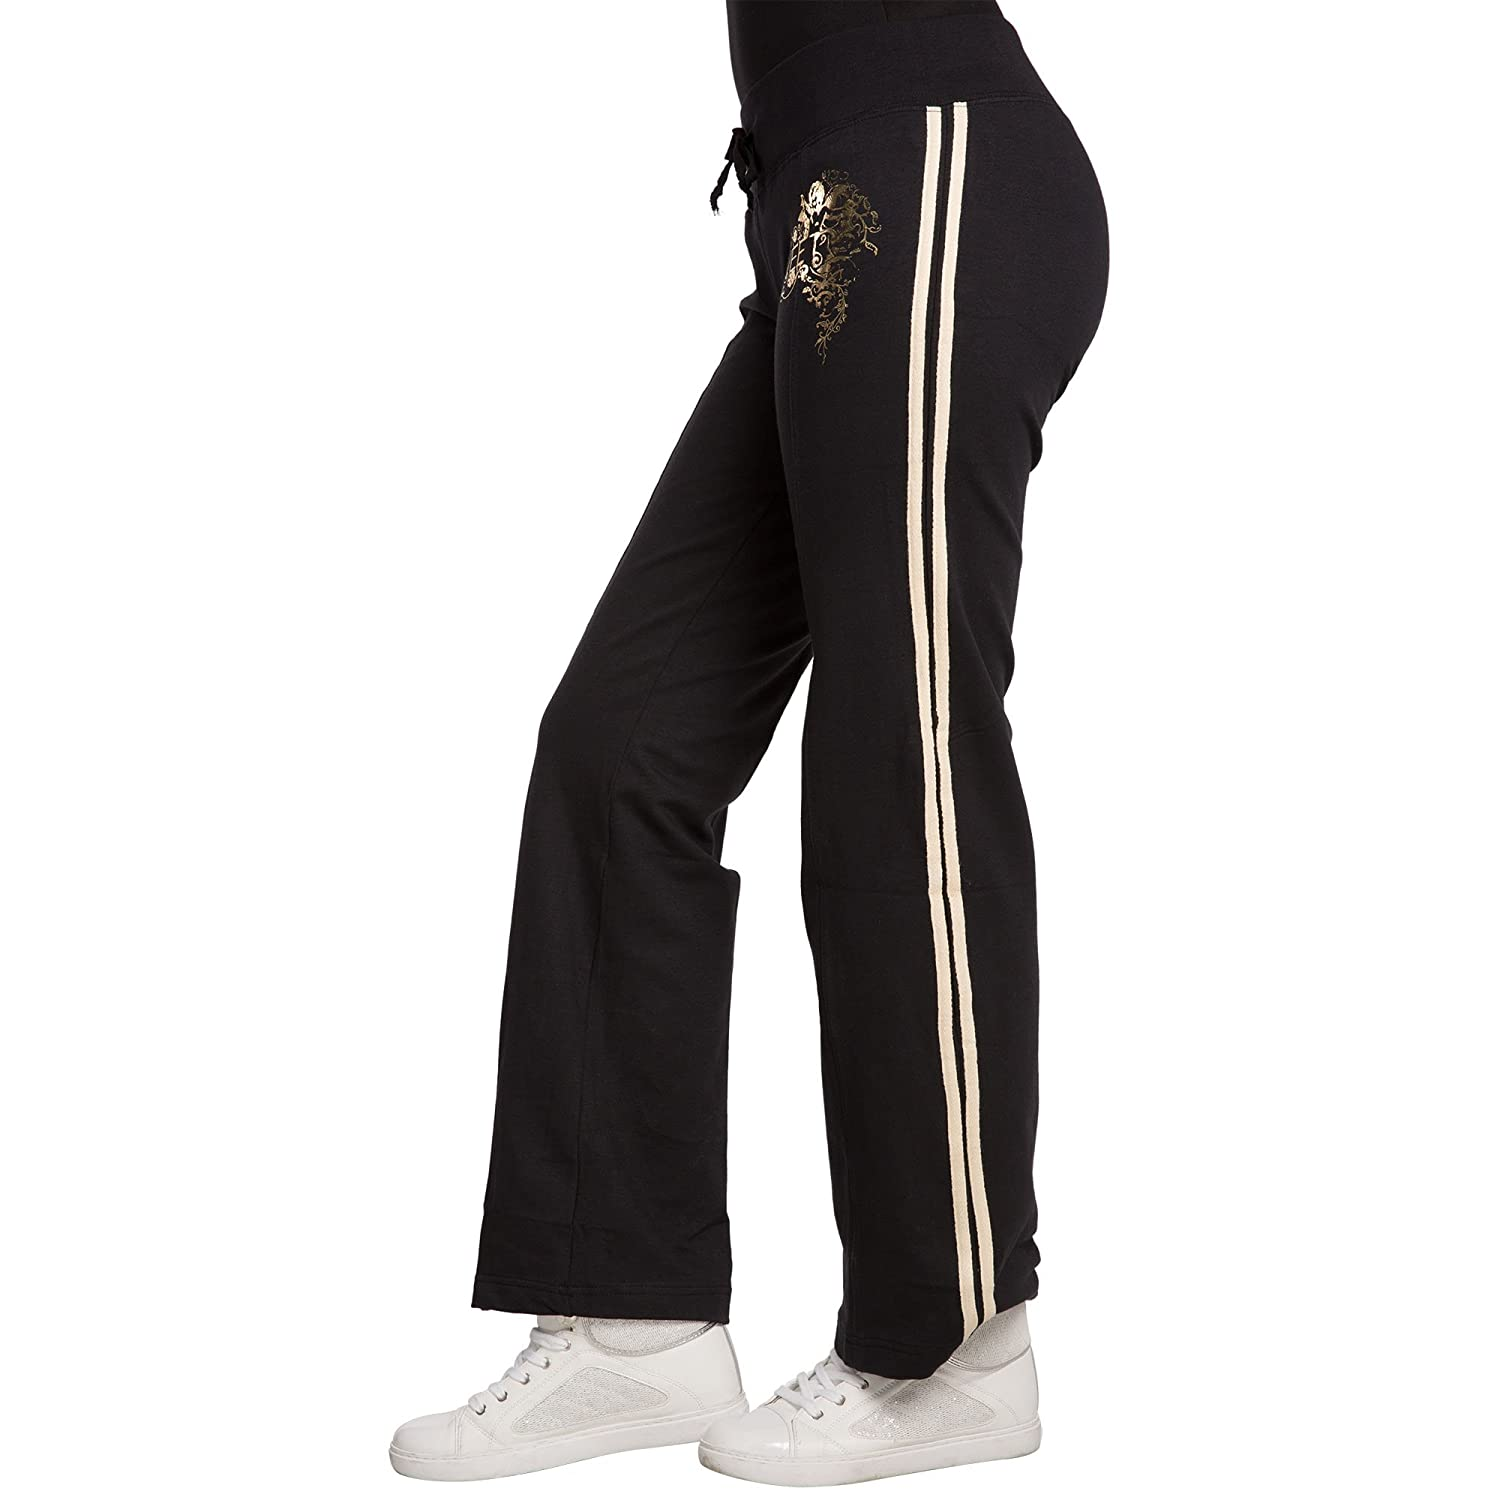 f55ac5db16 Sweet Vibes Junior Women Black Stretch French Terry Sweat Pants Contrast  Stripes Size M at Amazon Women's Clothing store: